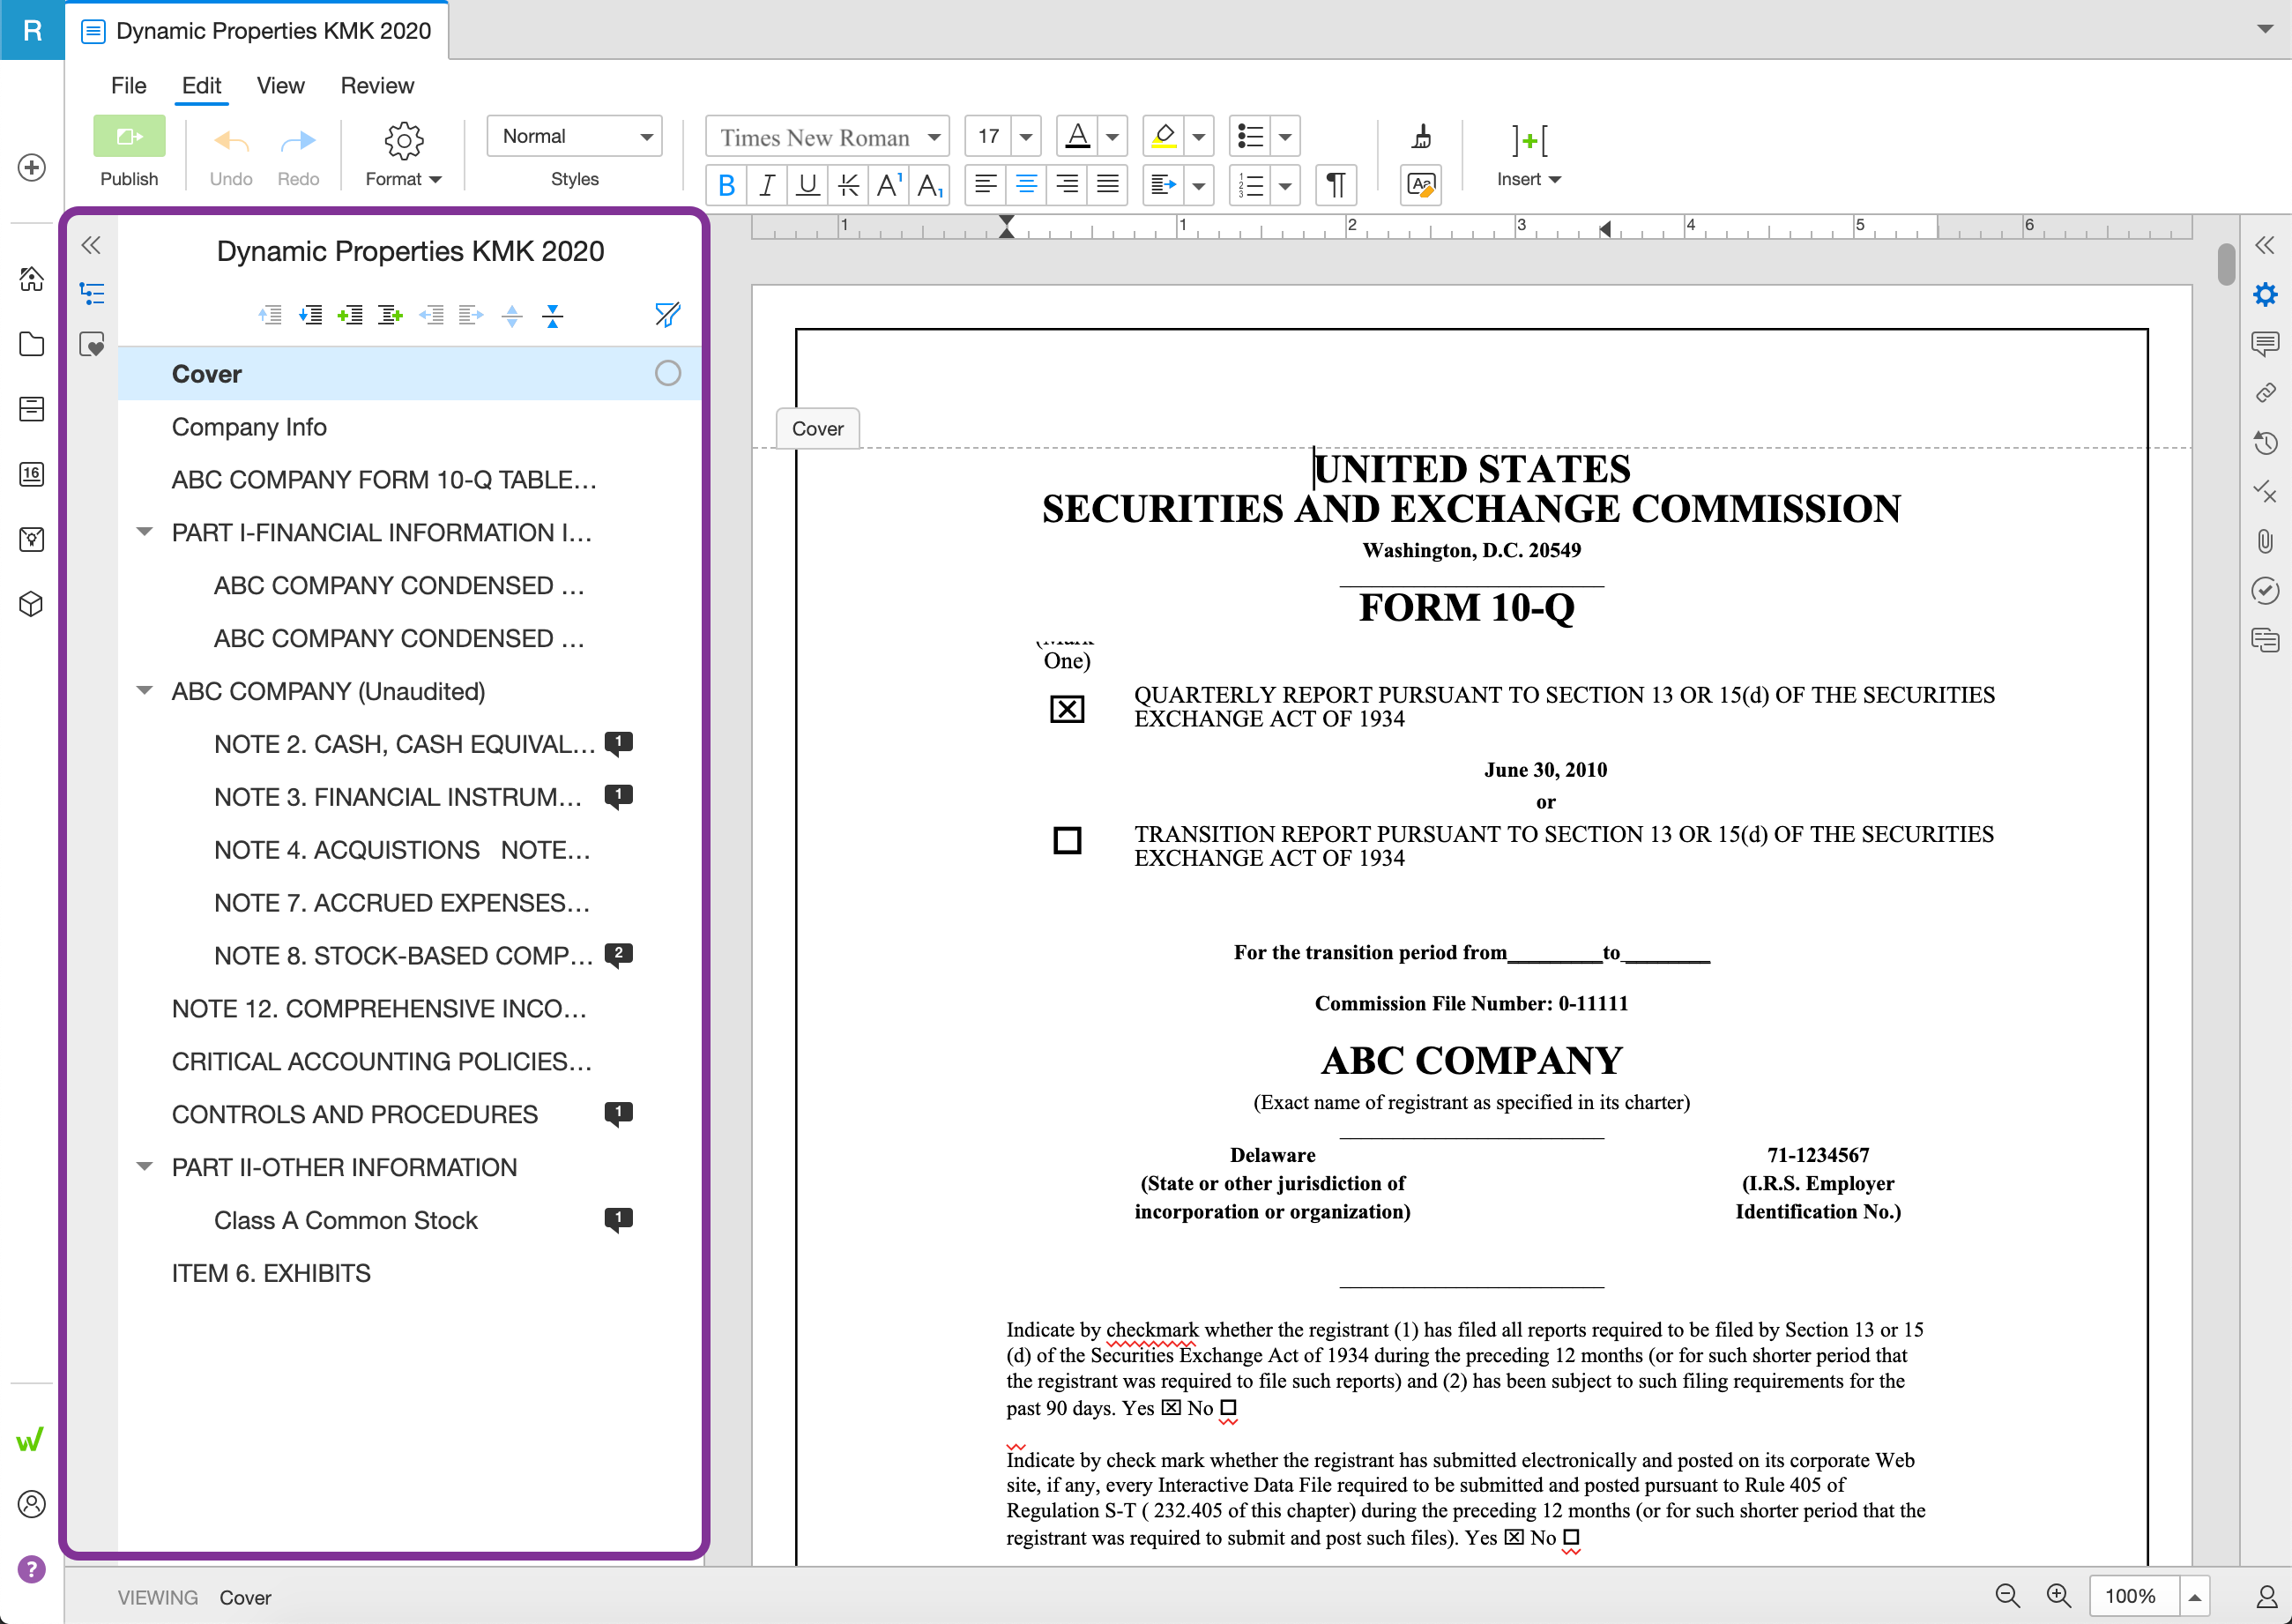 document-outline-1.png